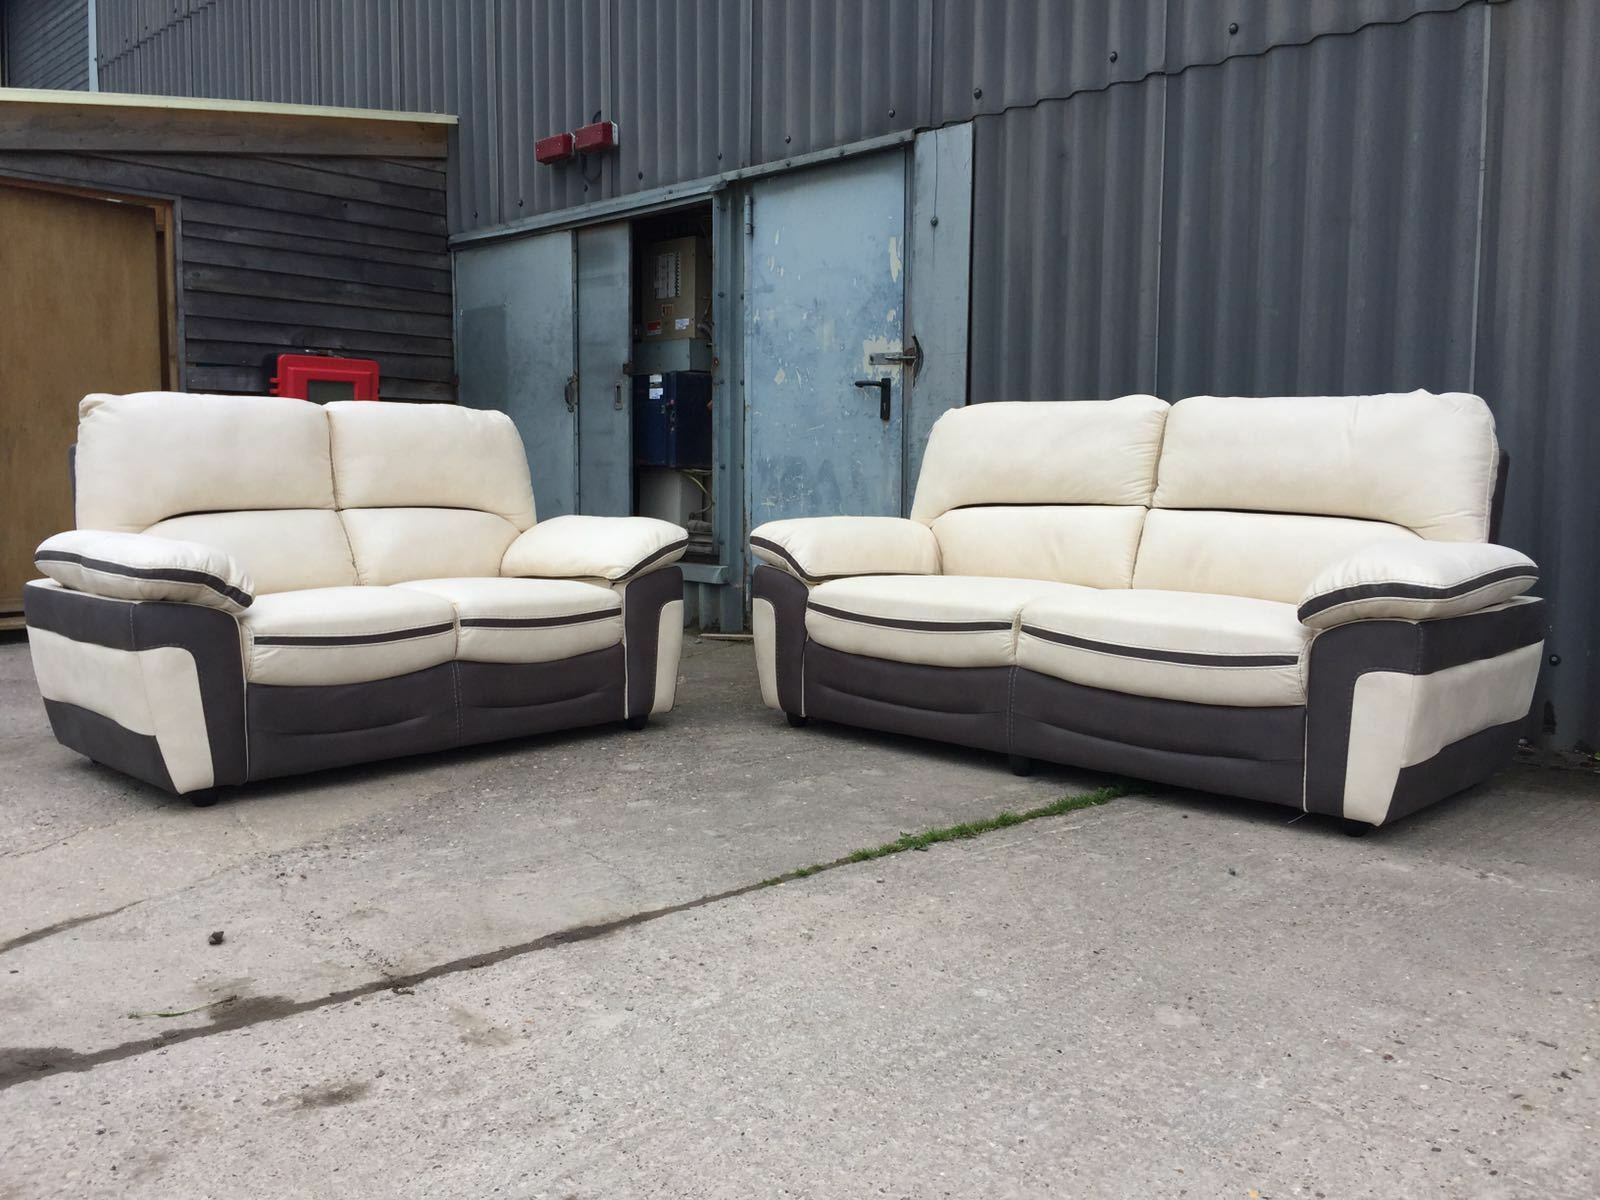 New Bari Fabric Leather Look 3 2 Seater Sofa In Cream